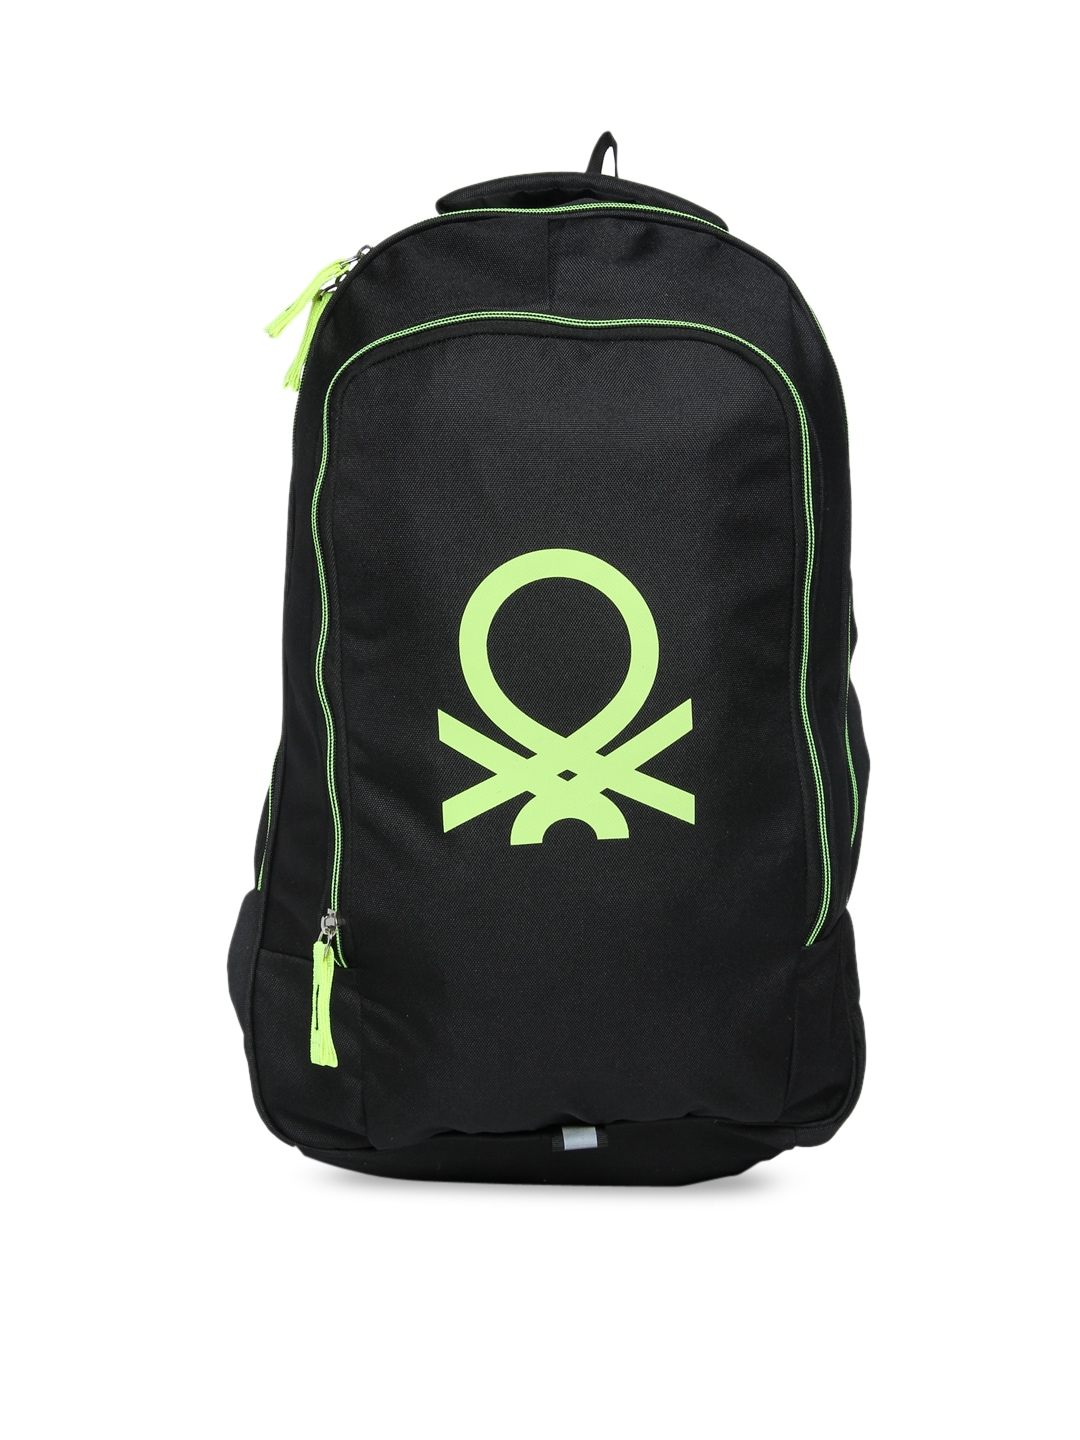 f7a8a04b277c Mens Bags   Backpacks - Buy Bags   Backpacks for Men Online